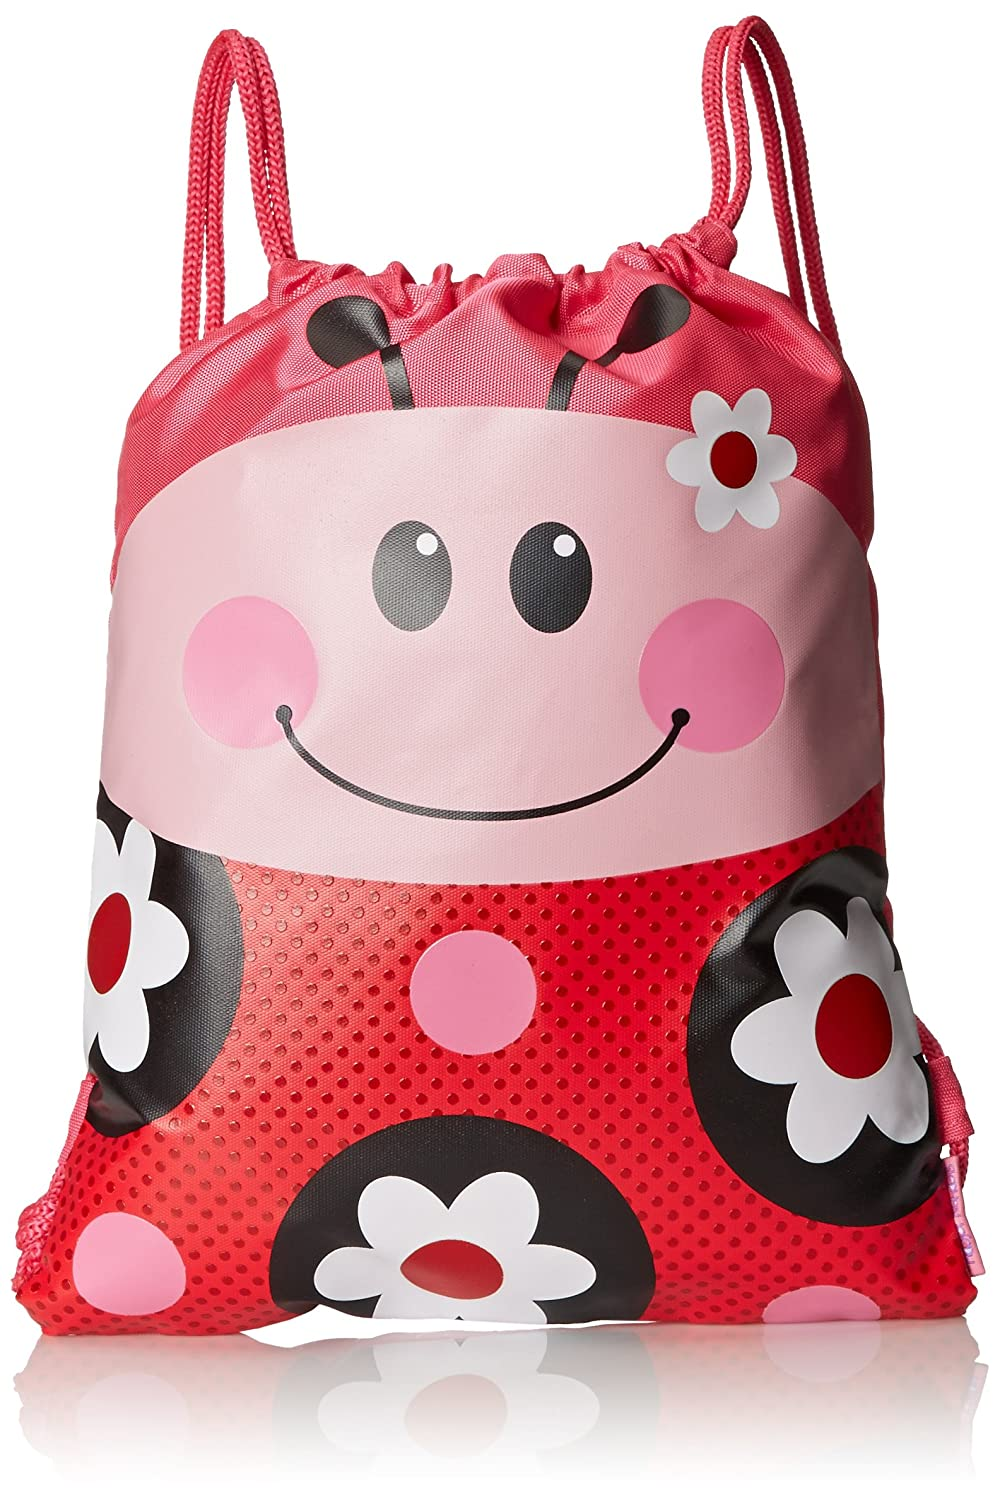 Stephen Joseph Drawstring Bag Ladybug Stephen Joseph Girls 2-6x SJ110260